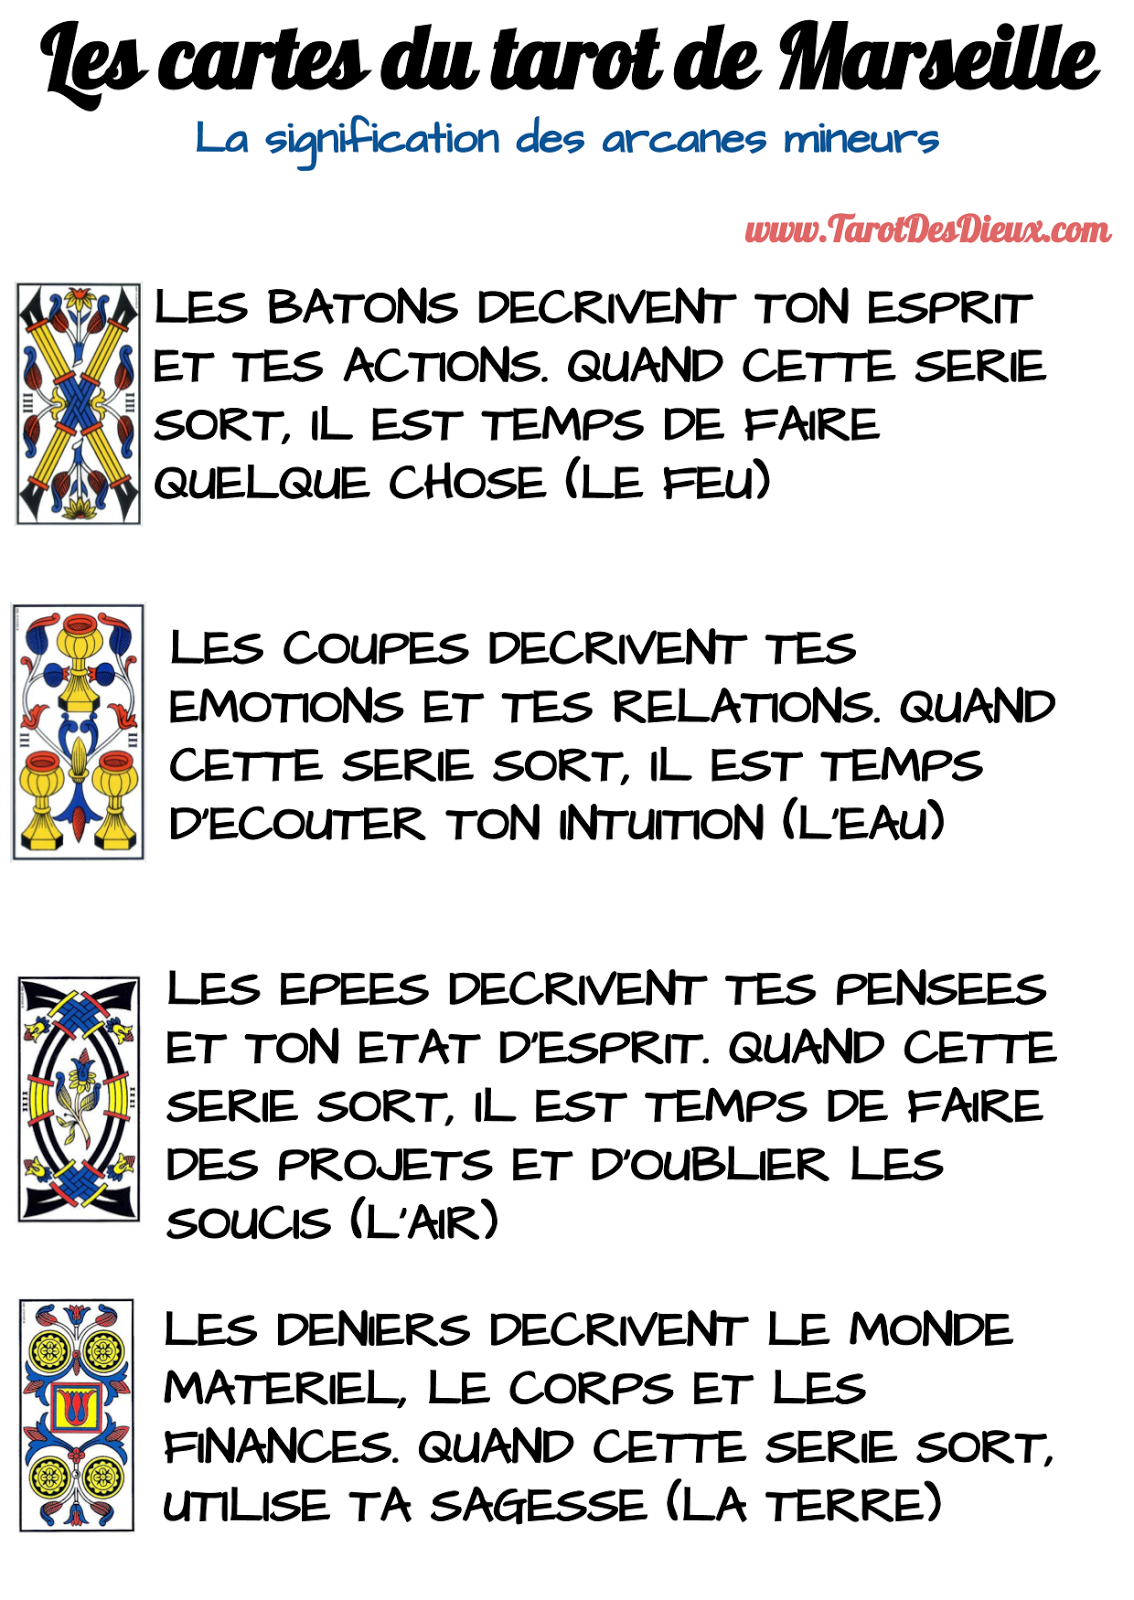 Infographic sur l'interprétation des cartes du tarot de Marseille